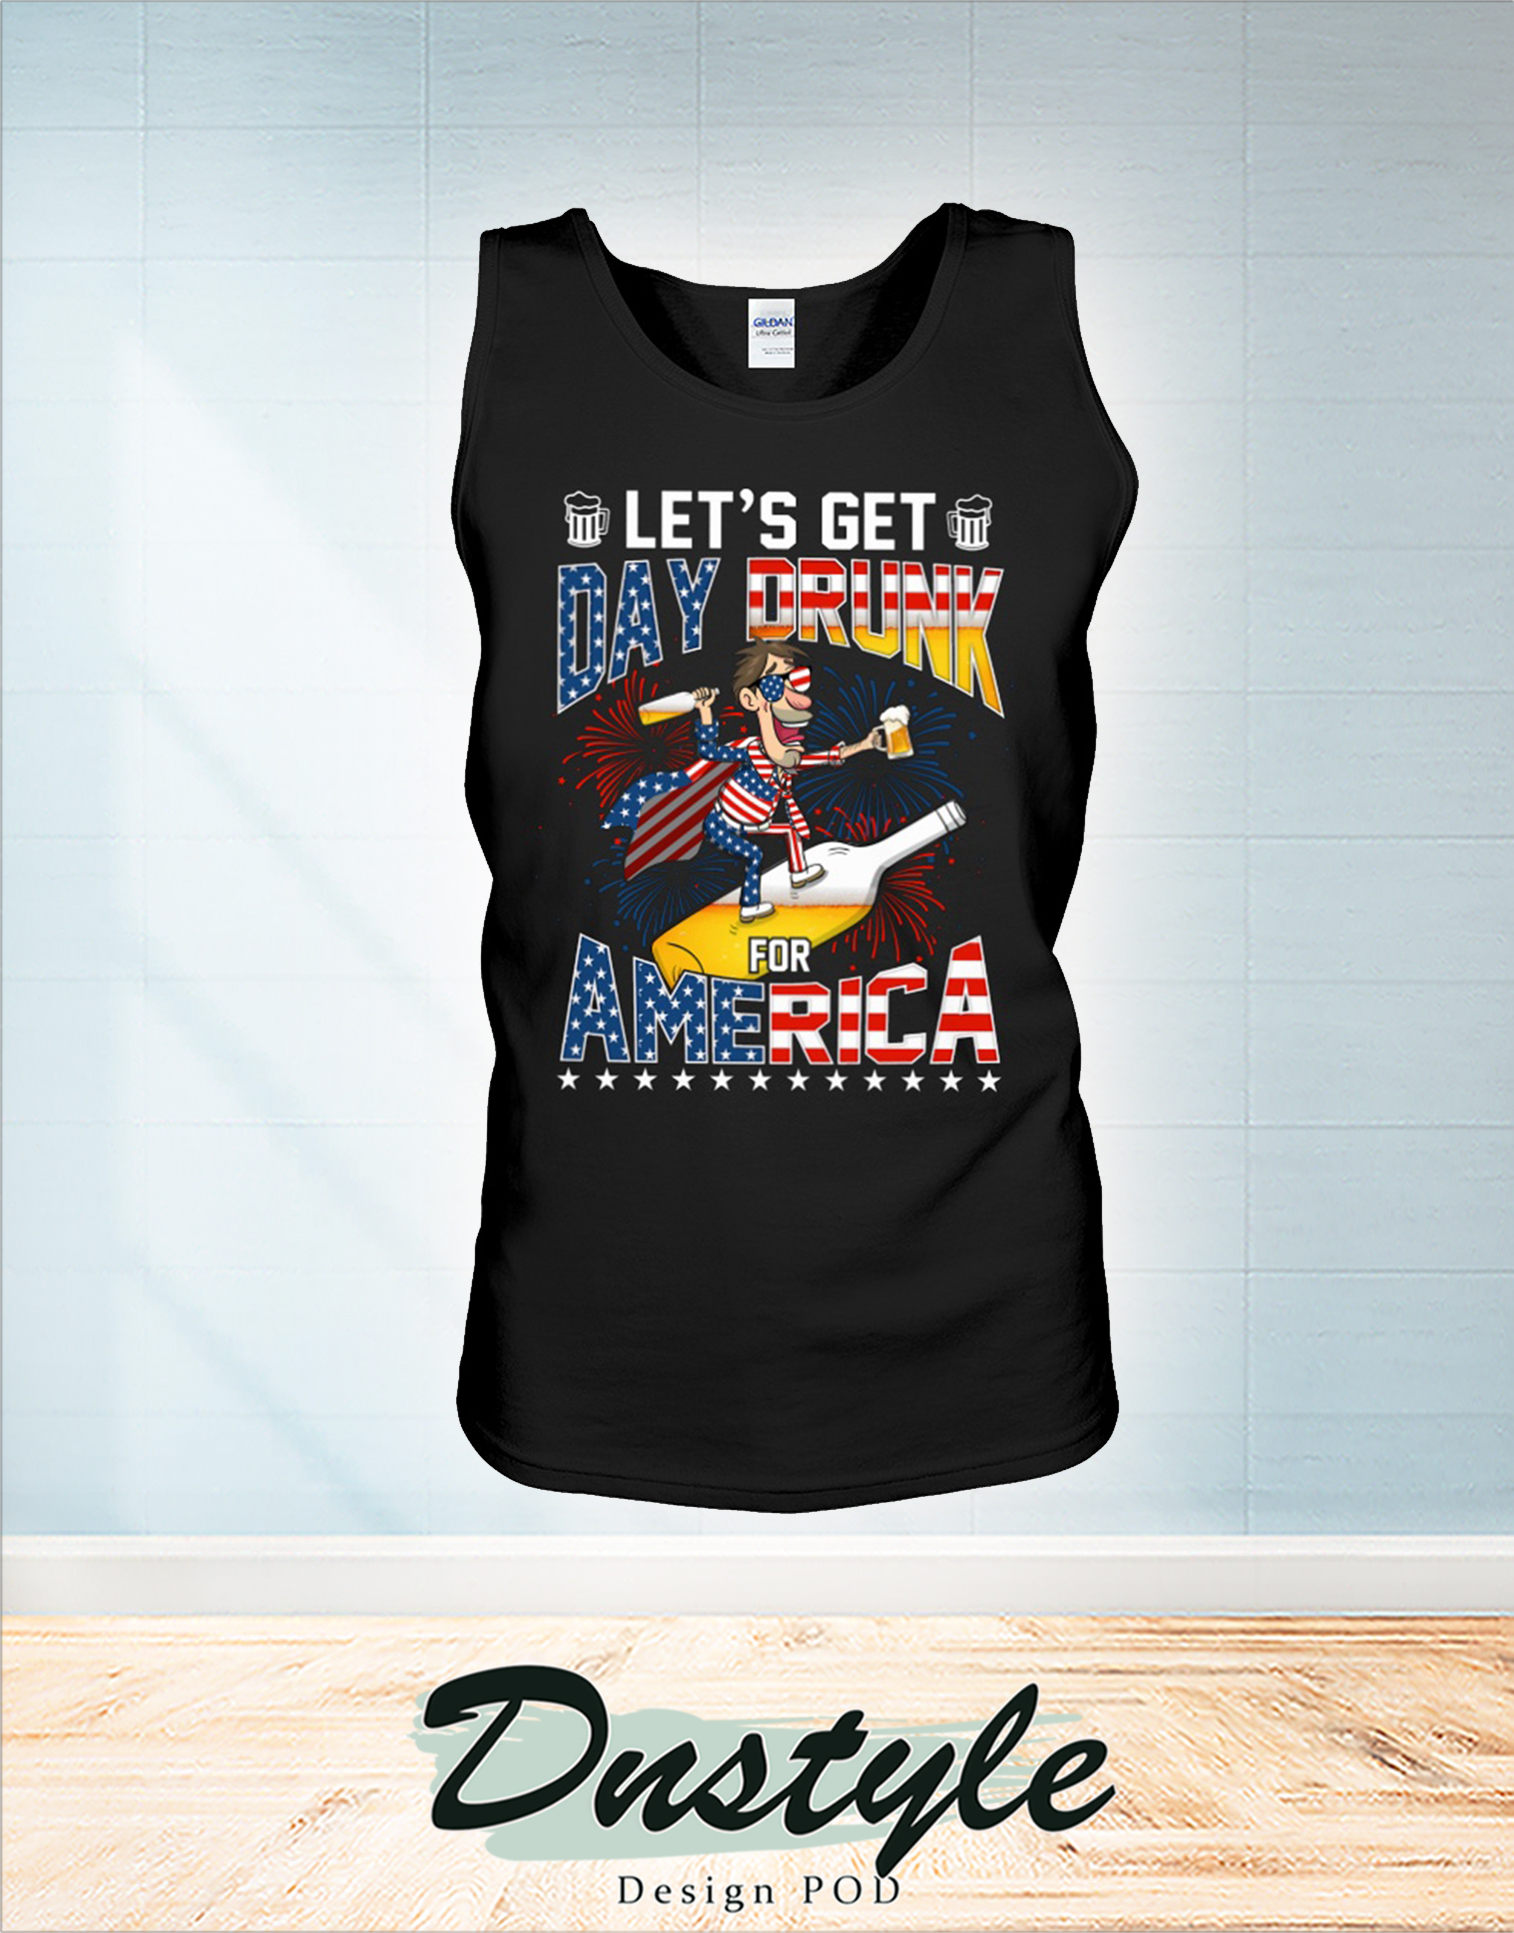 Let's get day drunk for america 4th of july tank